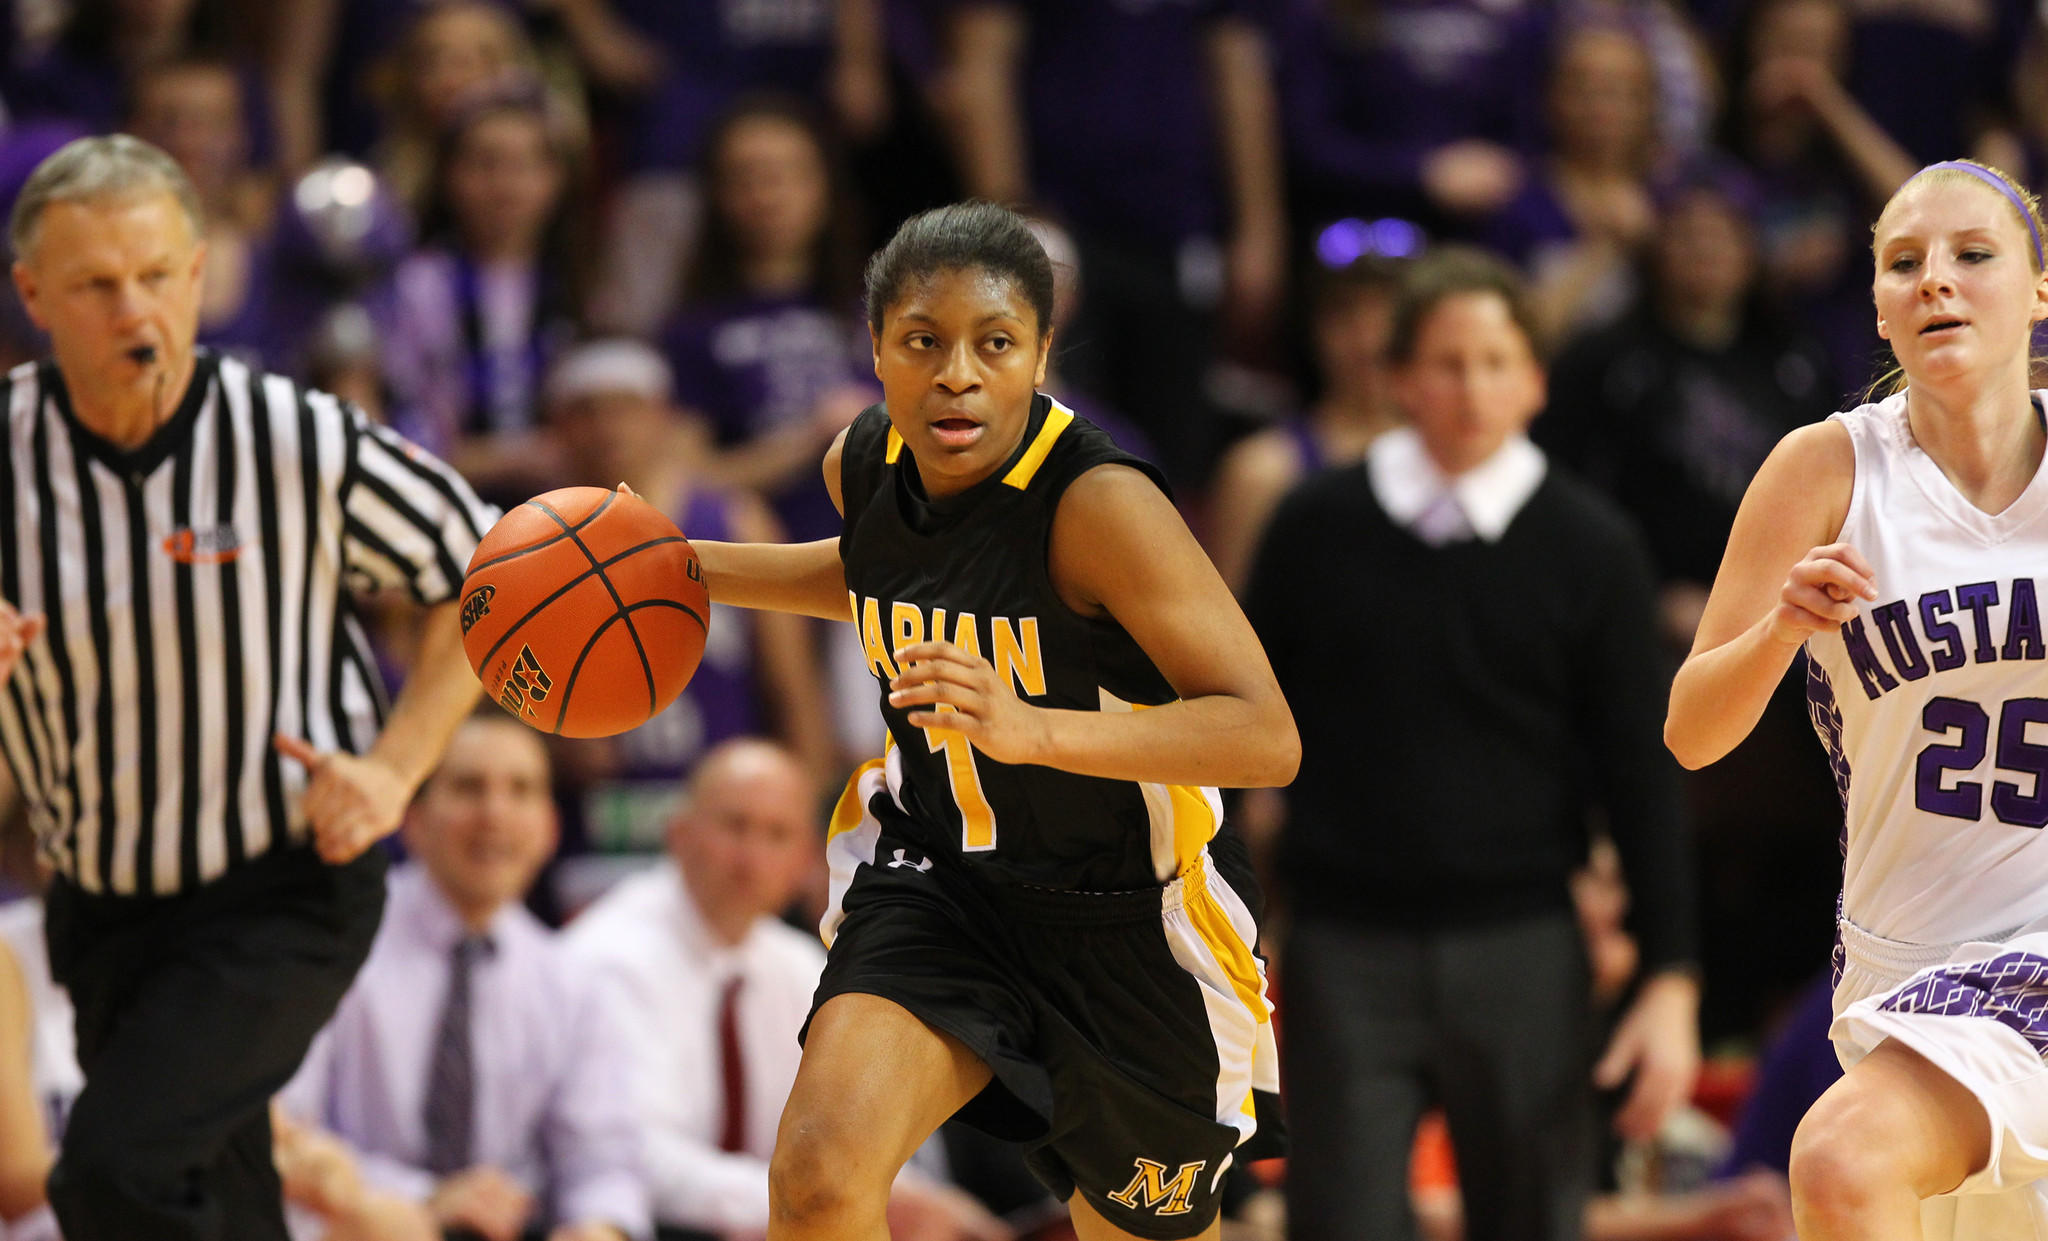 Marian Catholic's Teniya Page (1) moves the ball down the court as Rolling Meadows' Allie Kemph (25) trails behind during the Class 4A girls state basketball championship game on Saturday, March 2, 2013.